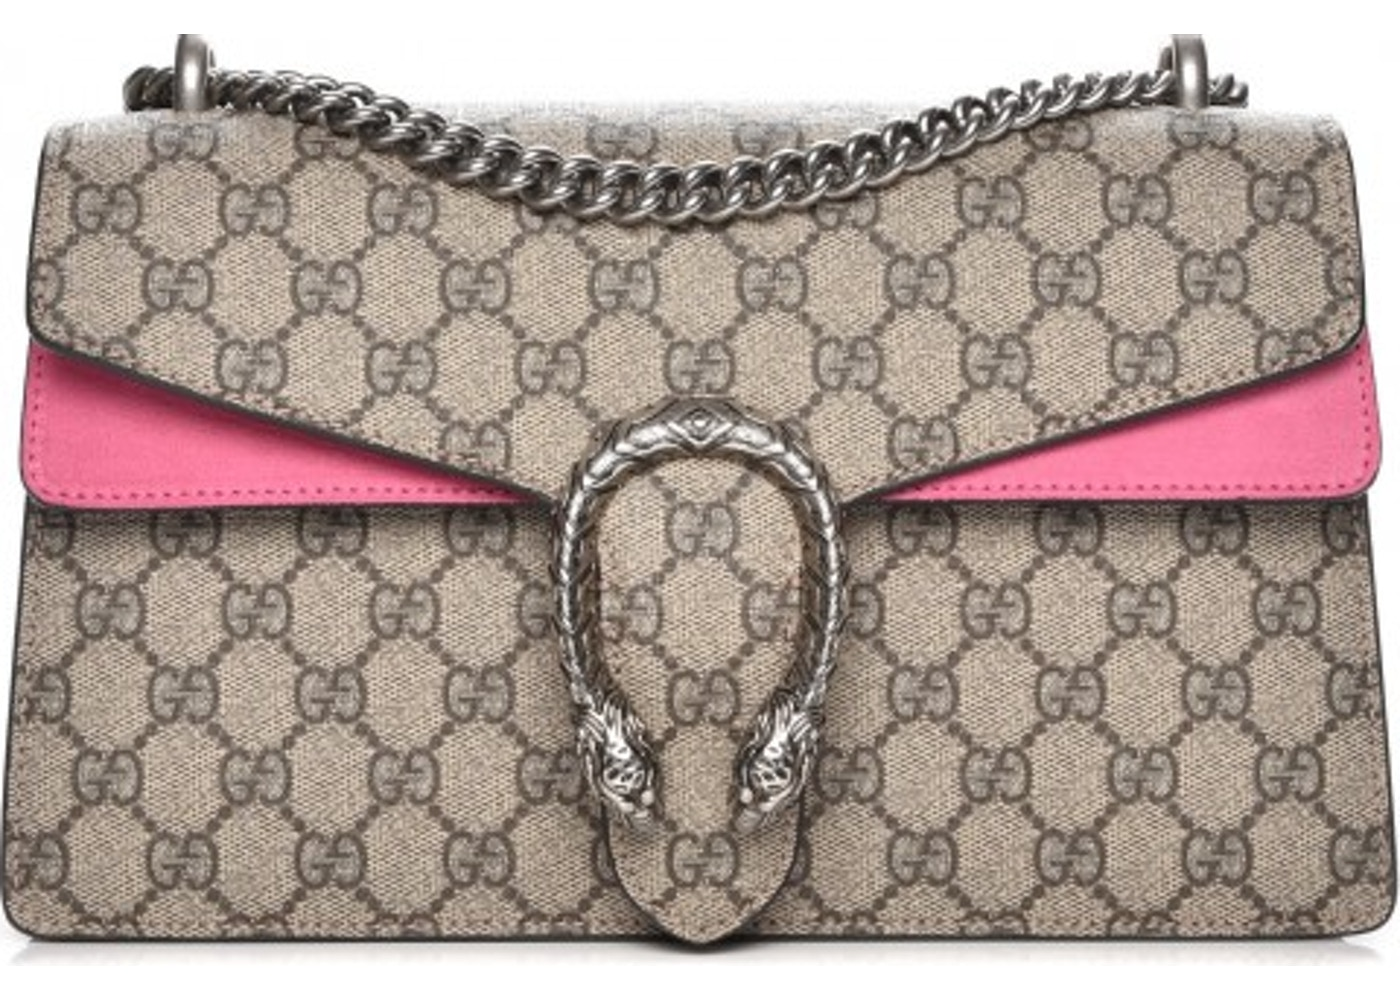 2782c713ae6 Gucci Dionysus Shoulder Bag Monogram GG Supreme Small Pink Beige. Monogram GG  Supreme Small Pink Beige